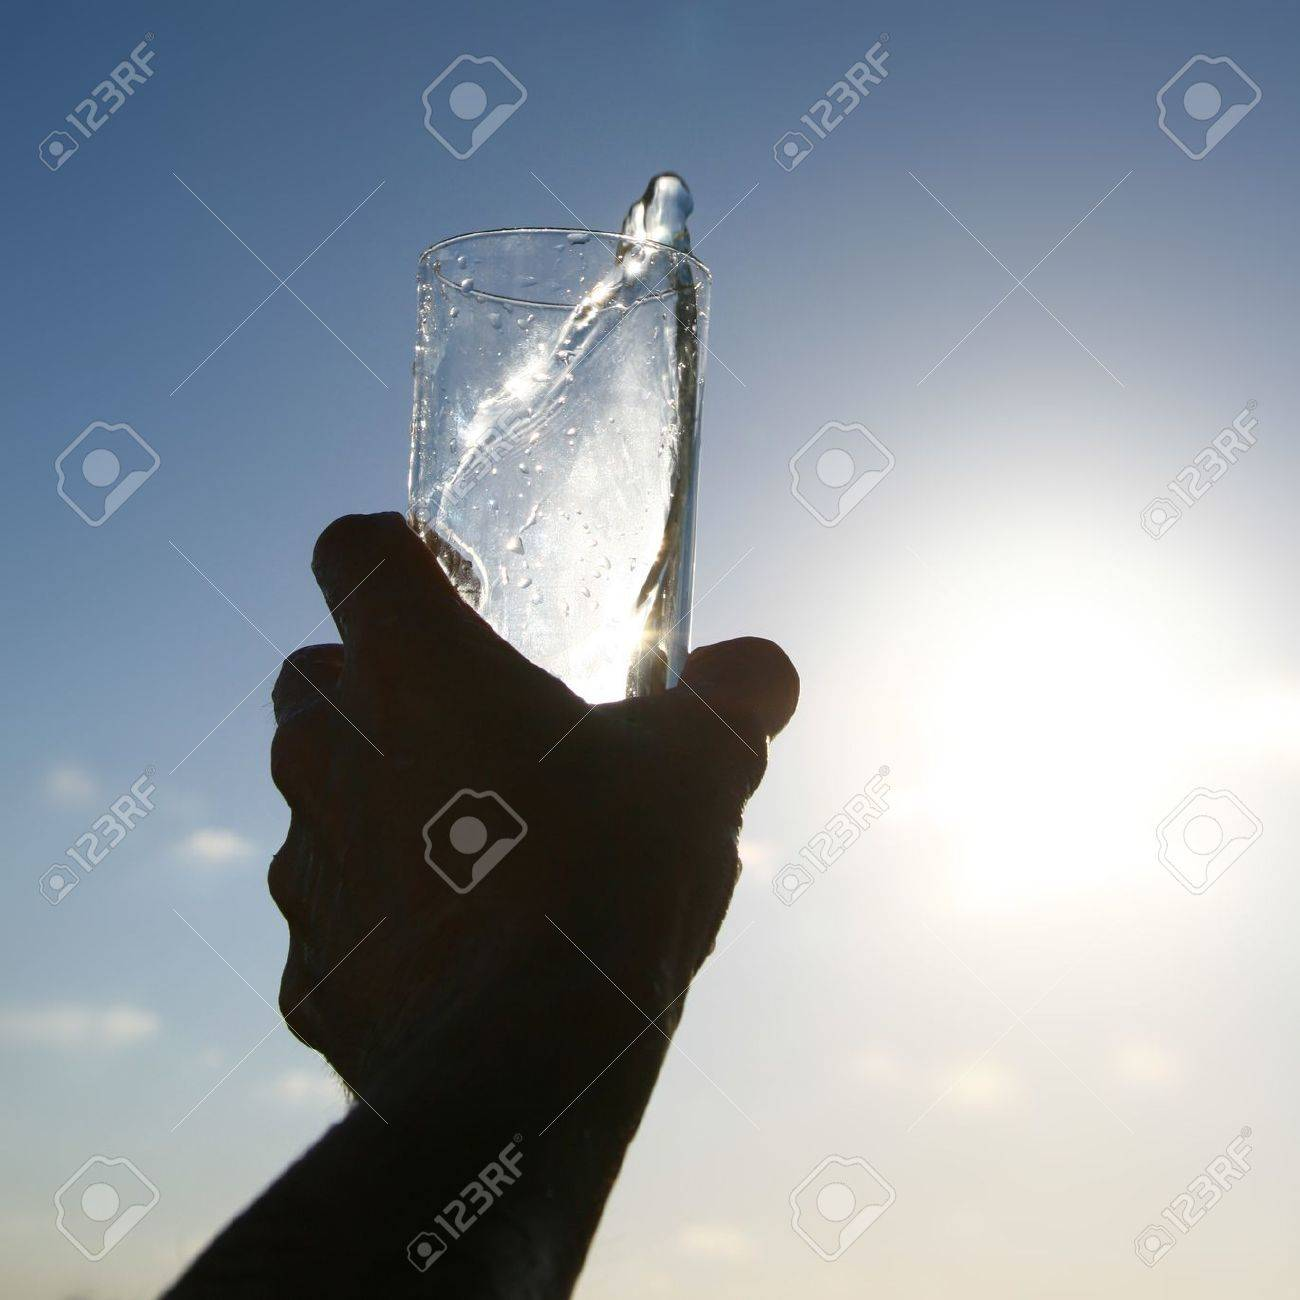 cold morning drink in glass Stock Photo - 10534772